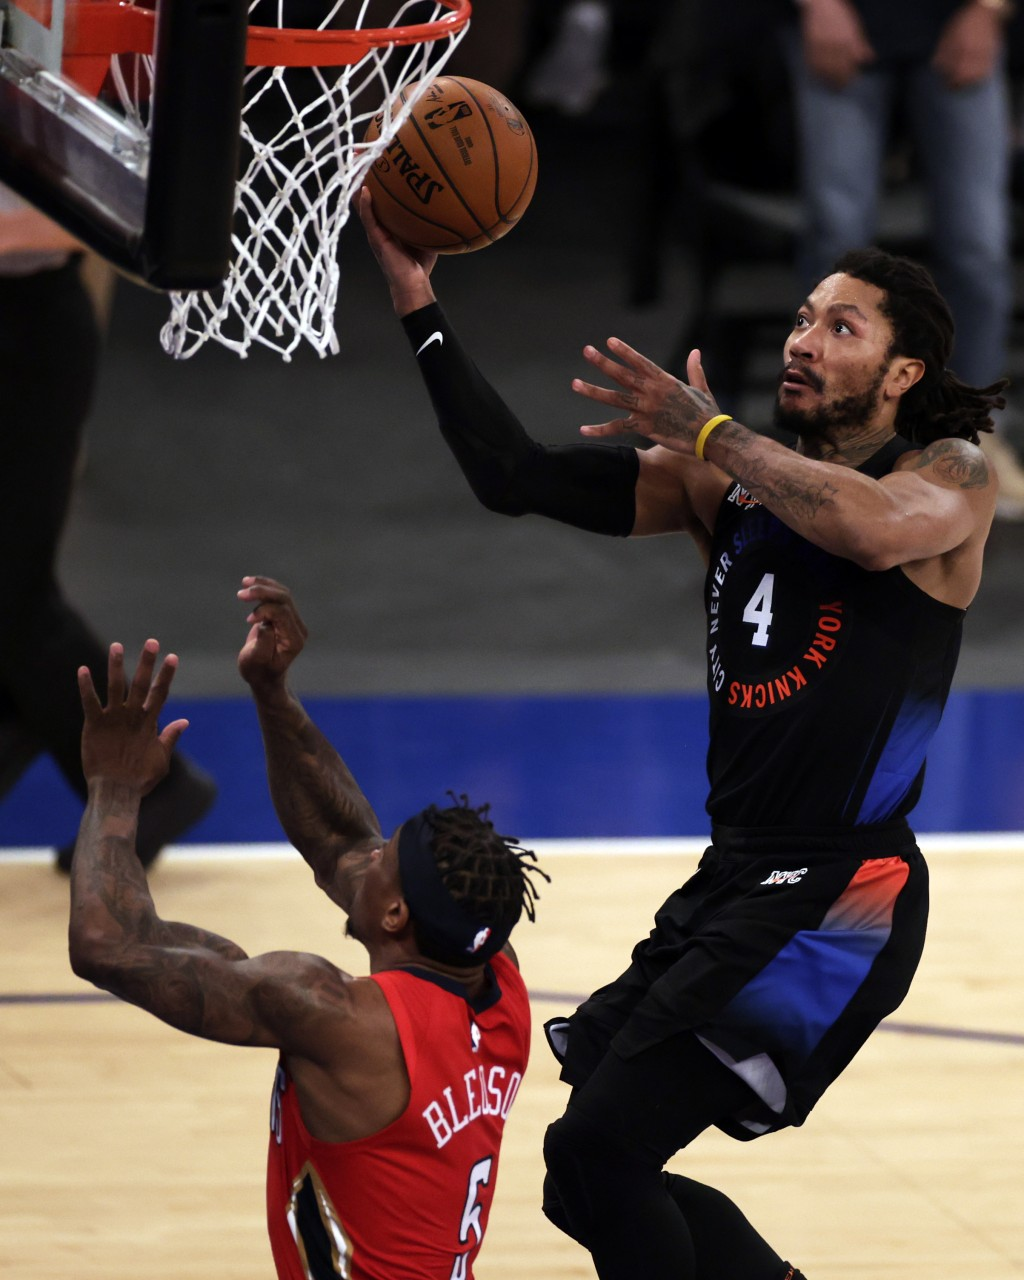 New York Knicks guard Derrick Rose, right, drives to the basket past New Orleans Pelicans guard Eric Bledsoe, left, during overtime of an NBA basketba...